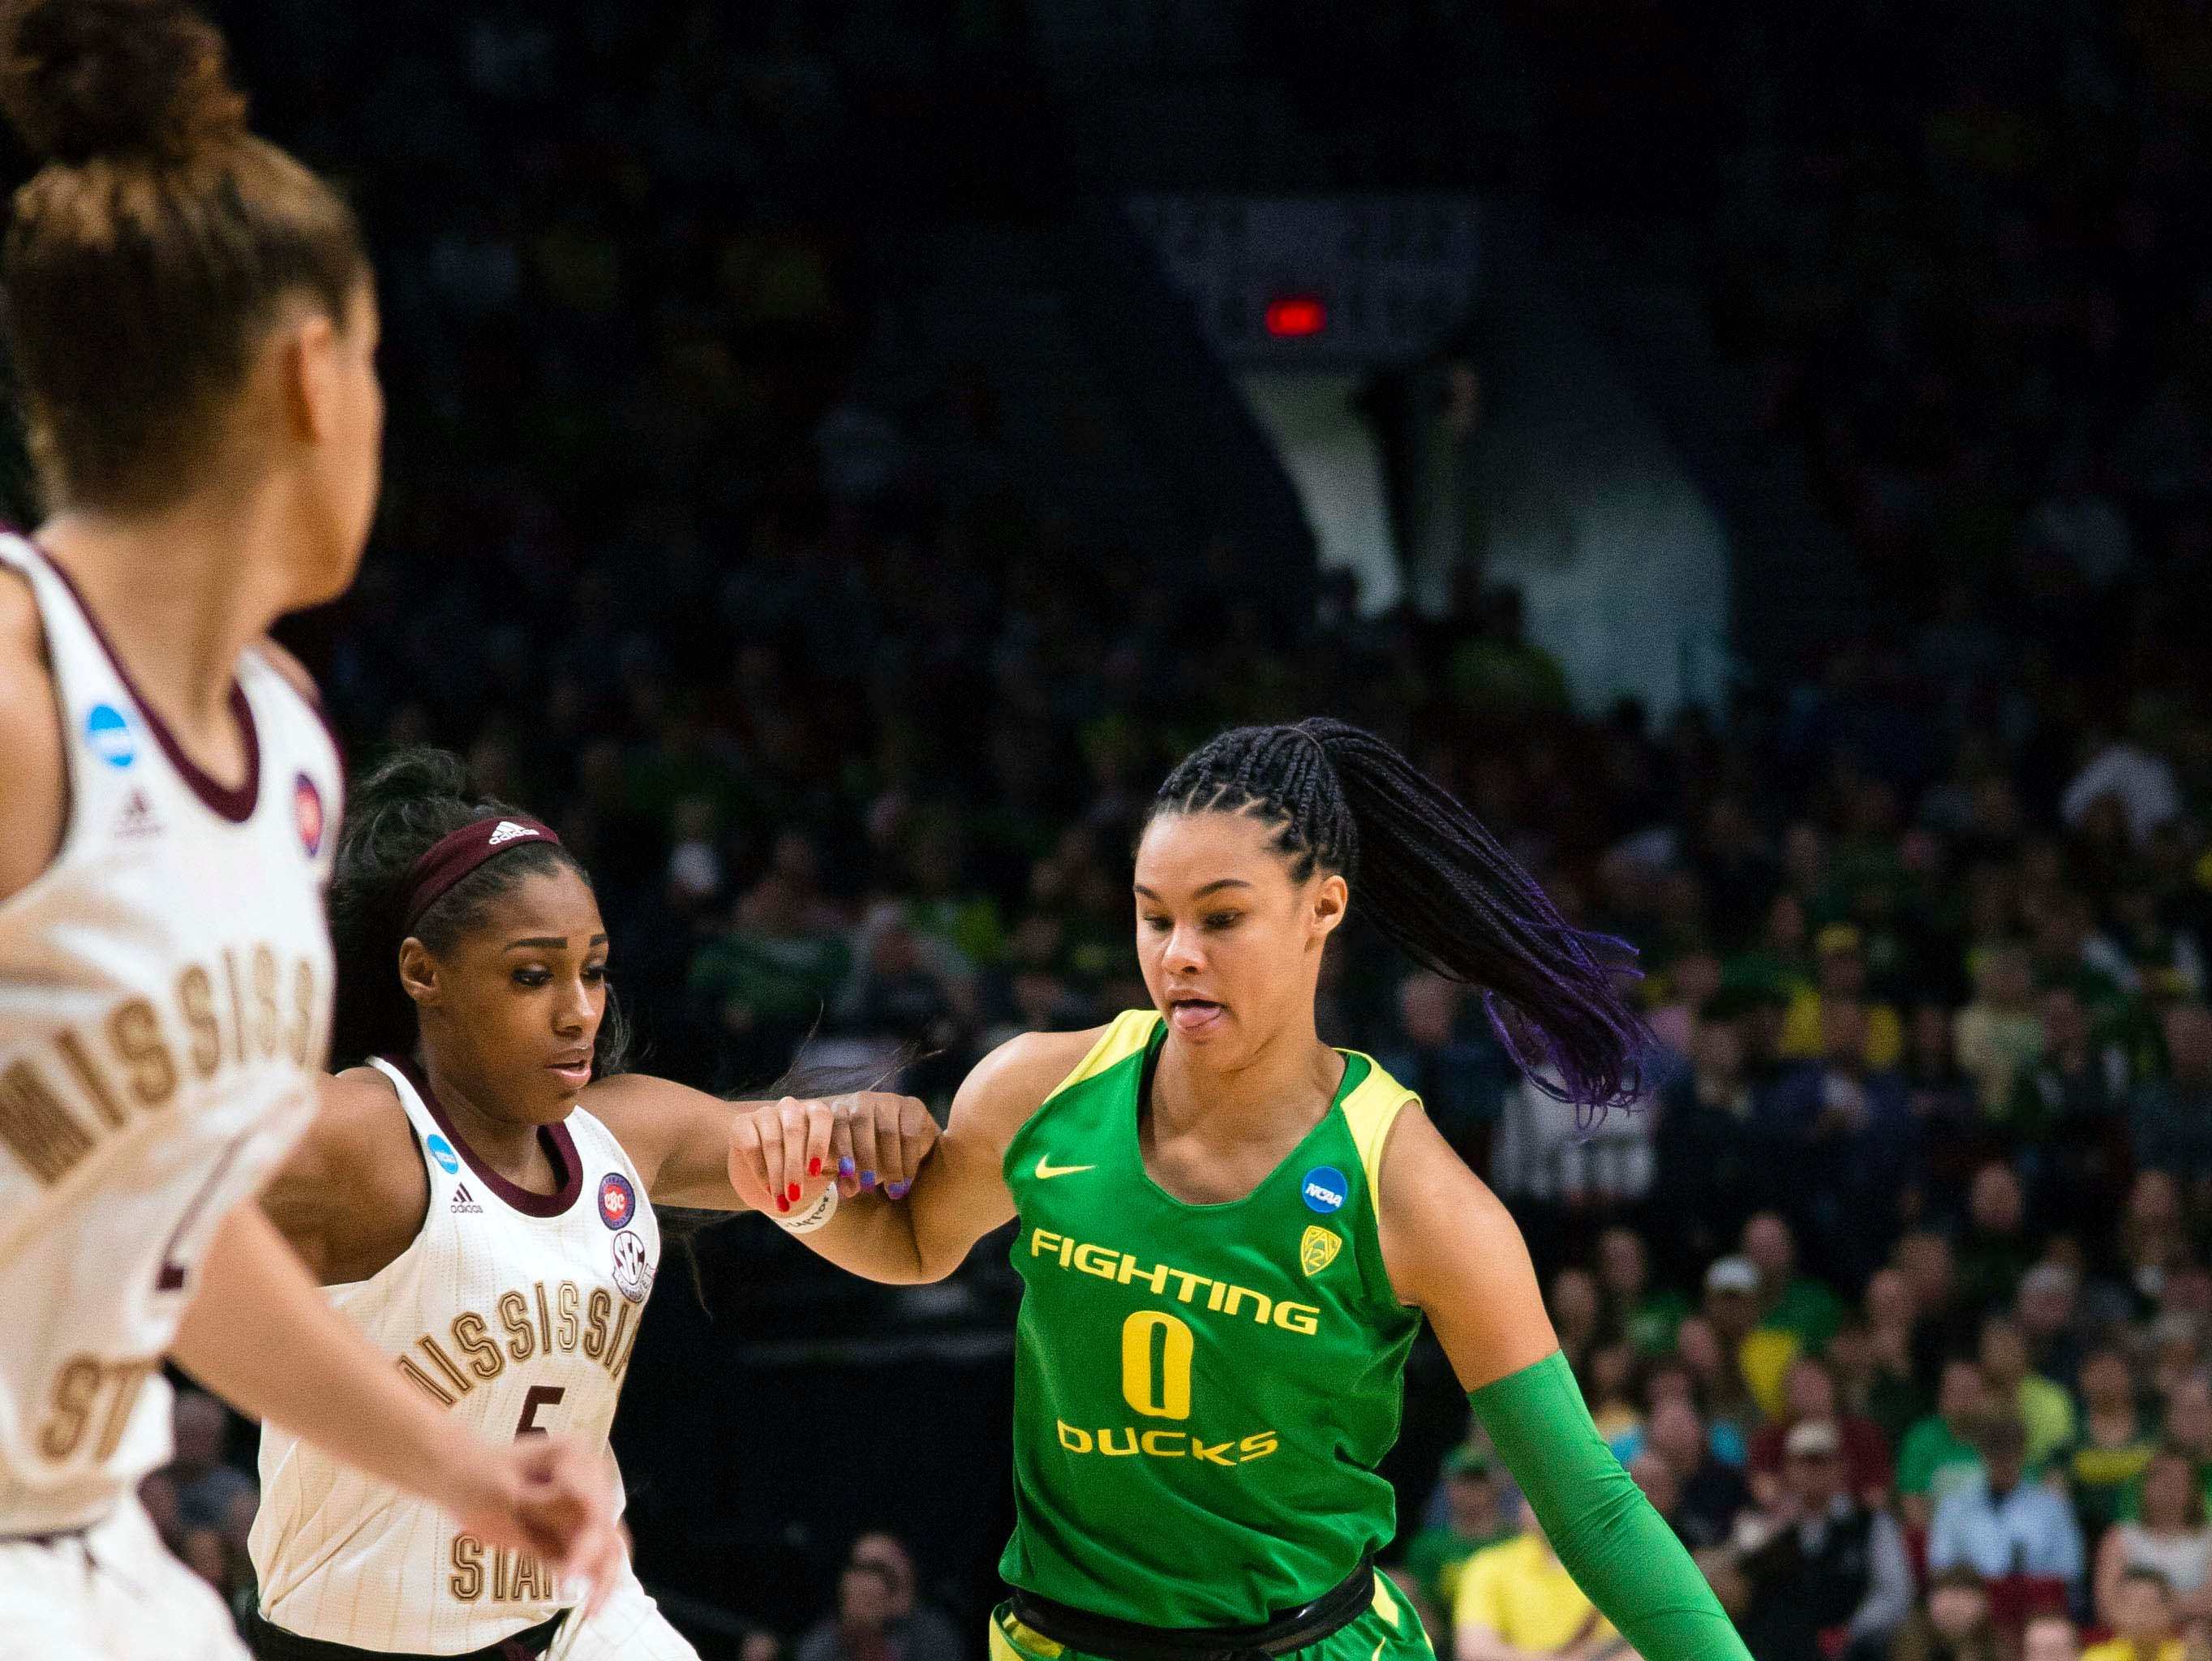 Oregon Ducks forward Satou Sabally (0) drives to the basket against Mississippi State Bulldogs forward Anriel Howard (5) during the first half in the championship game of the Portland regional in the women's 2019 NCAA Tournament at Moda Center.